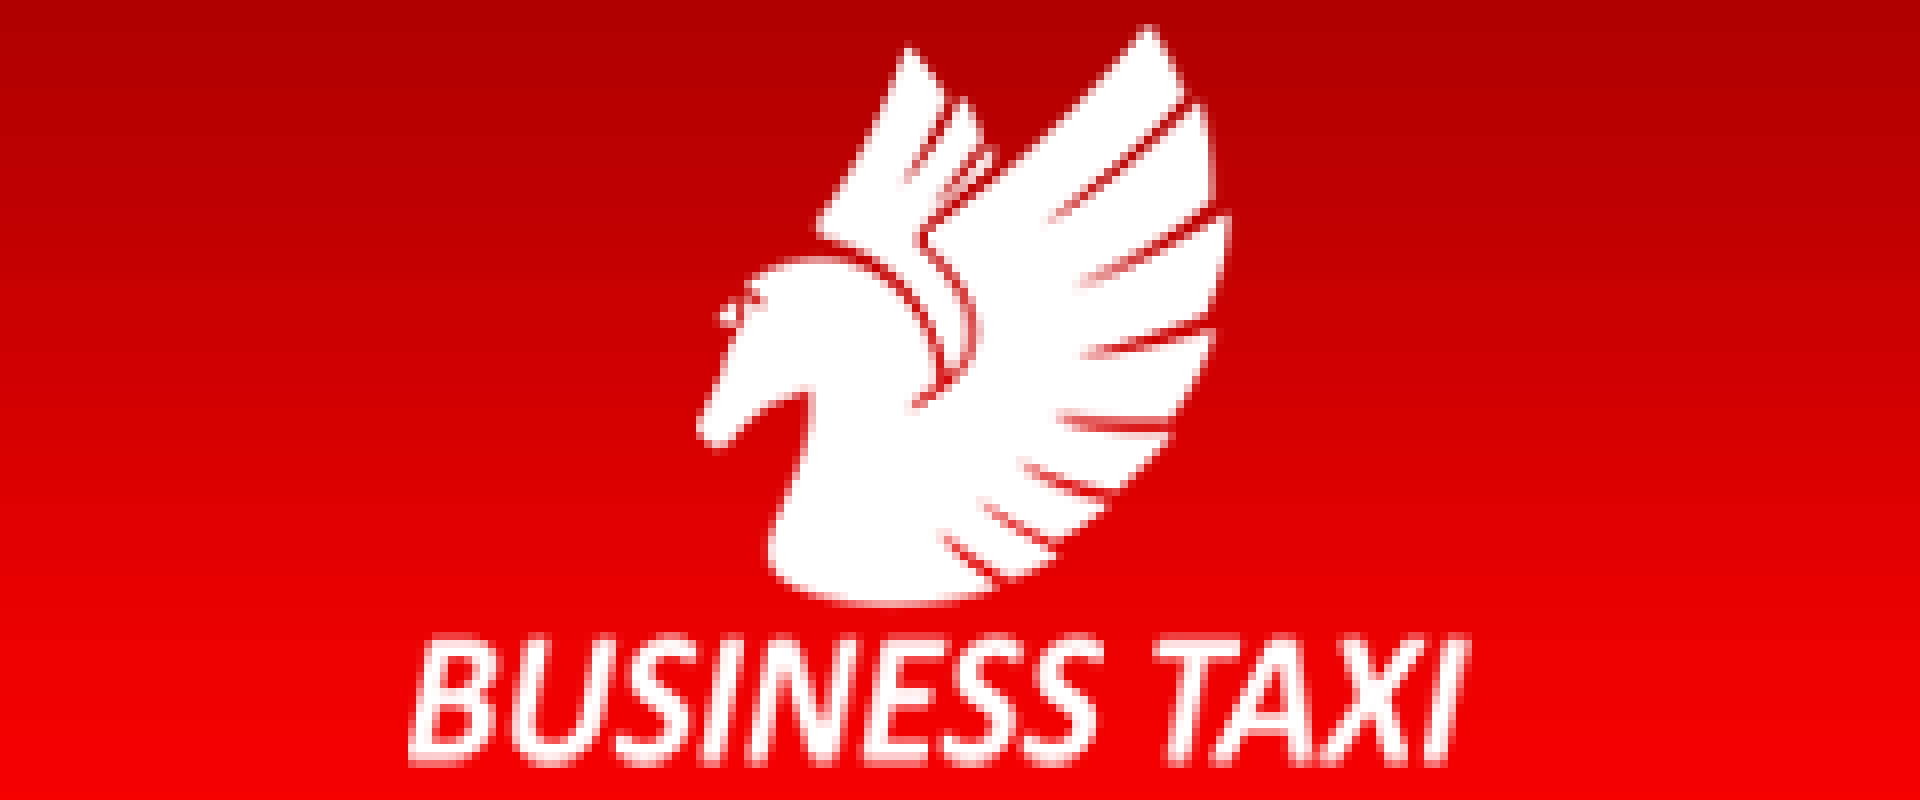 Фото Business taxi